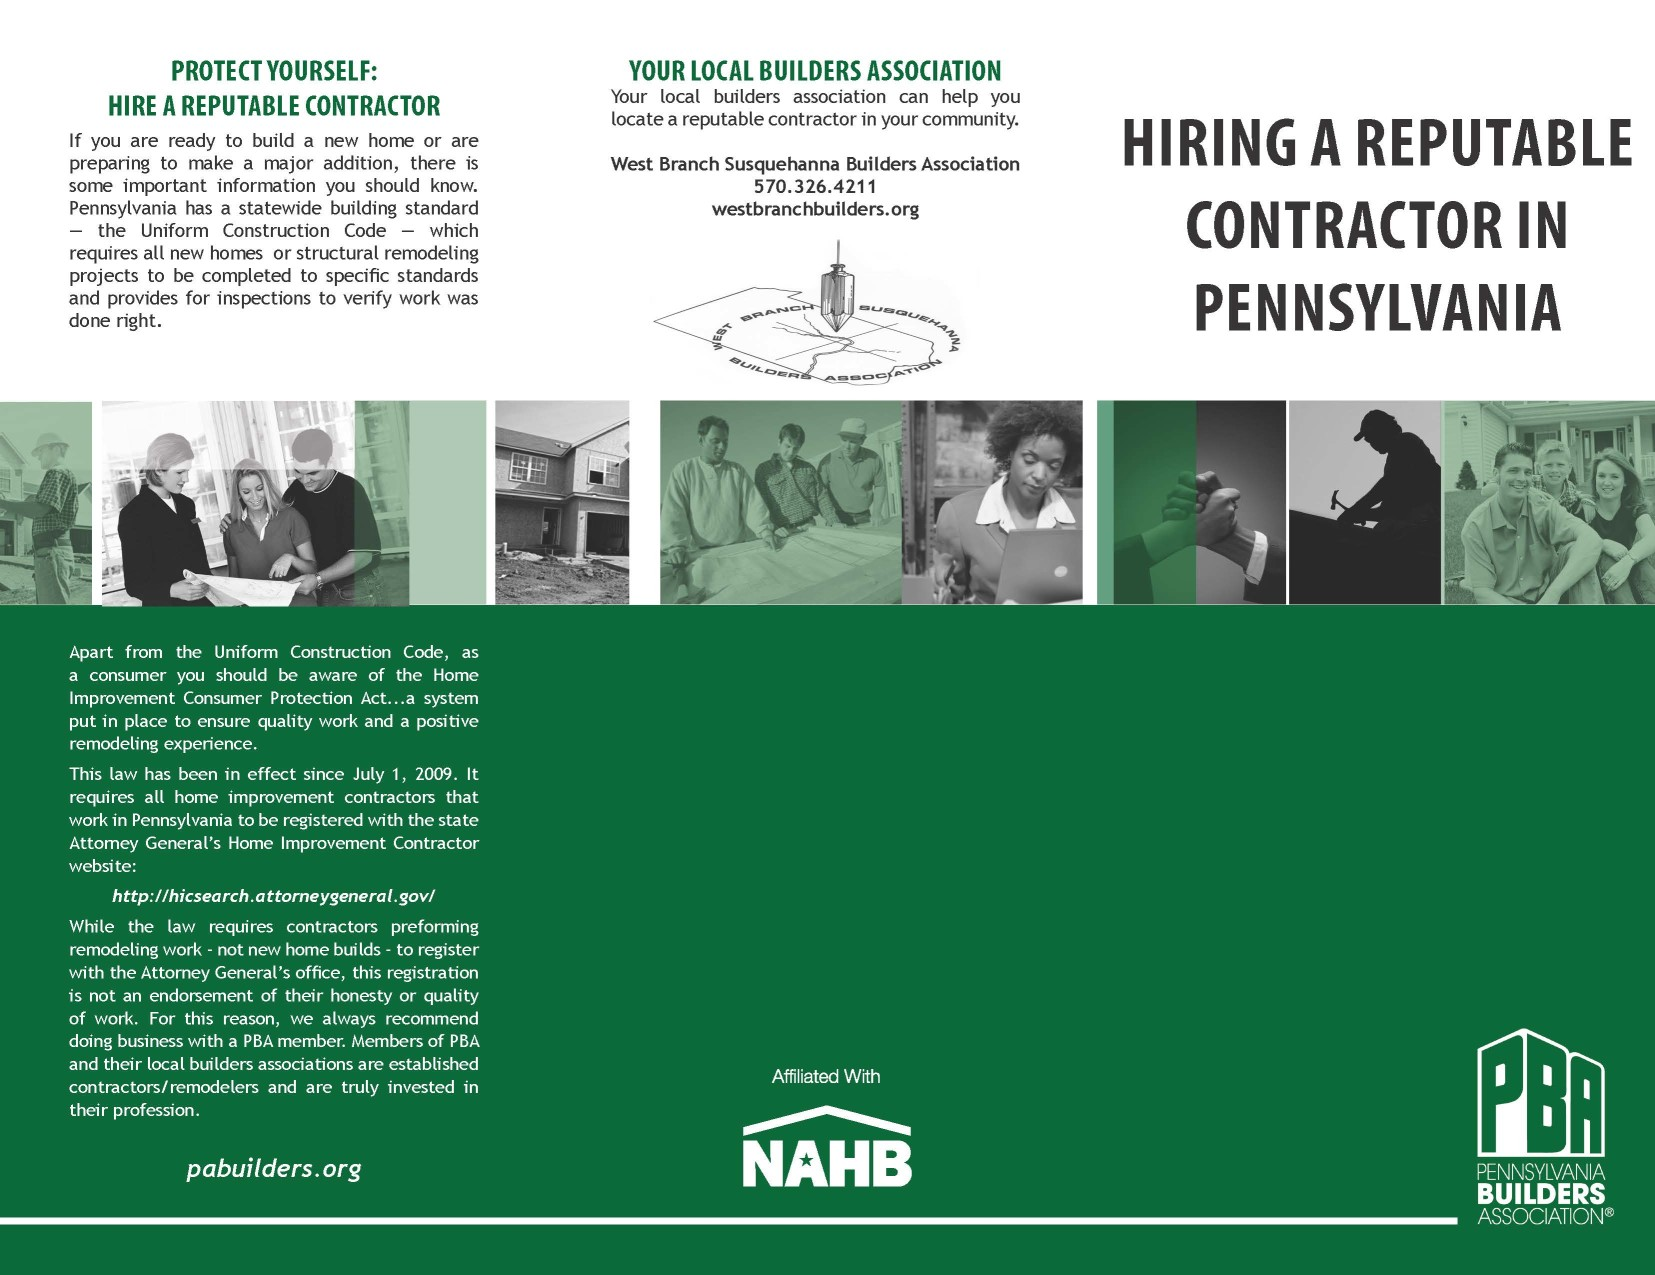 Hiring a Reputable Contractor in Pennsylvania